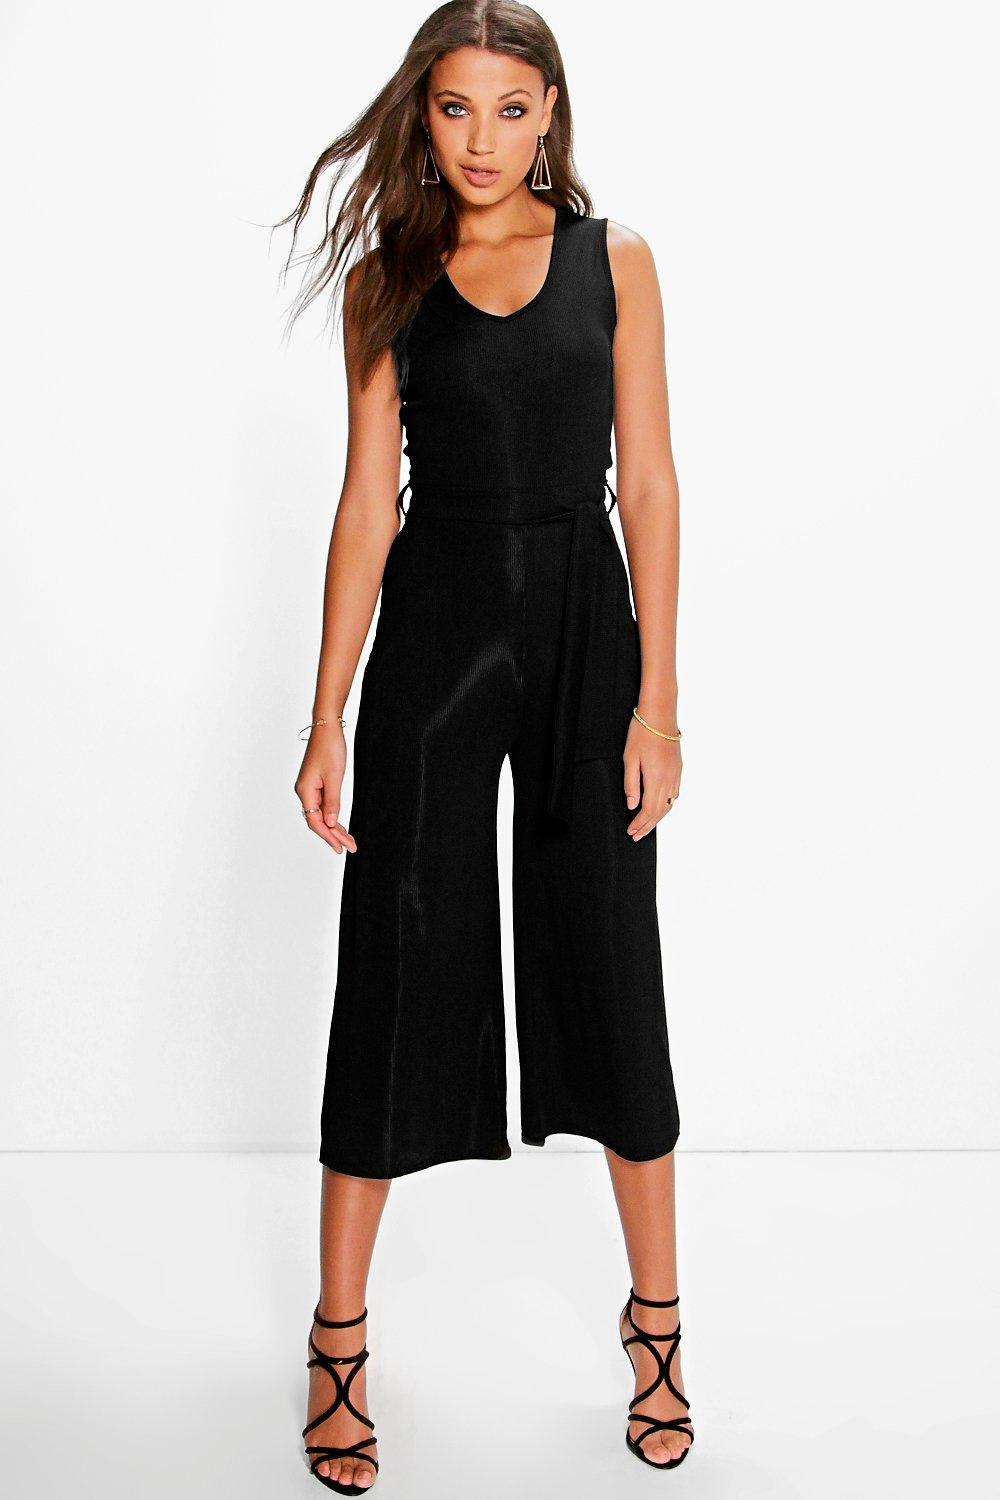 Naomi Ribbed Tie Front Culotte Jumpsuit Black - neckline: round neck; sleeve style: standard vest straps/shoulder straps; pattern: plain; predominant colour: black; occasions: evening; length: calf length; fit: body skimming; fibres: polyester/polyamide - stretch; sleeve length: sleeveless; style: jumpsuit; pattern type: fabric; texture group: jersey - stretchy/drapey; season: a/w 2016